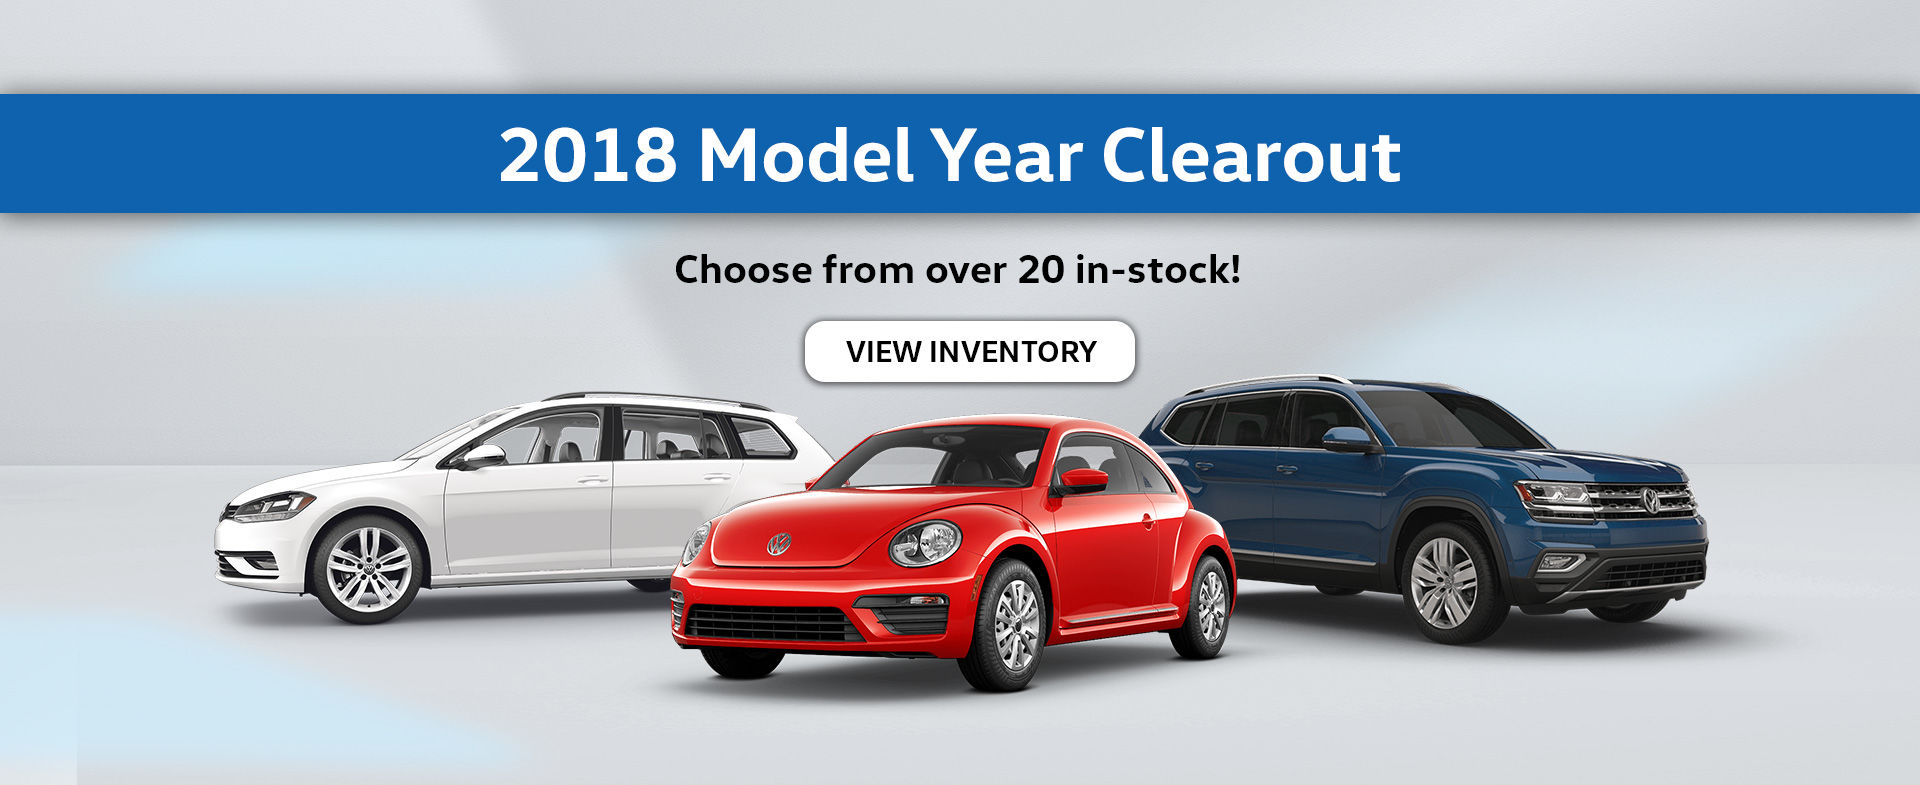 2018 Model Year Clearout